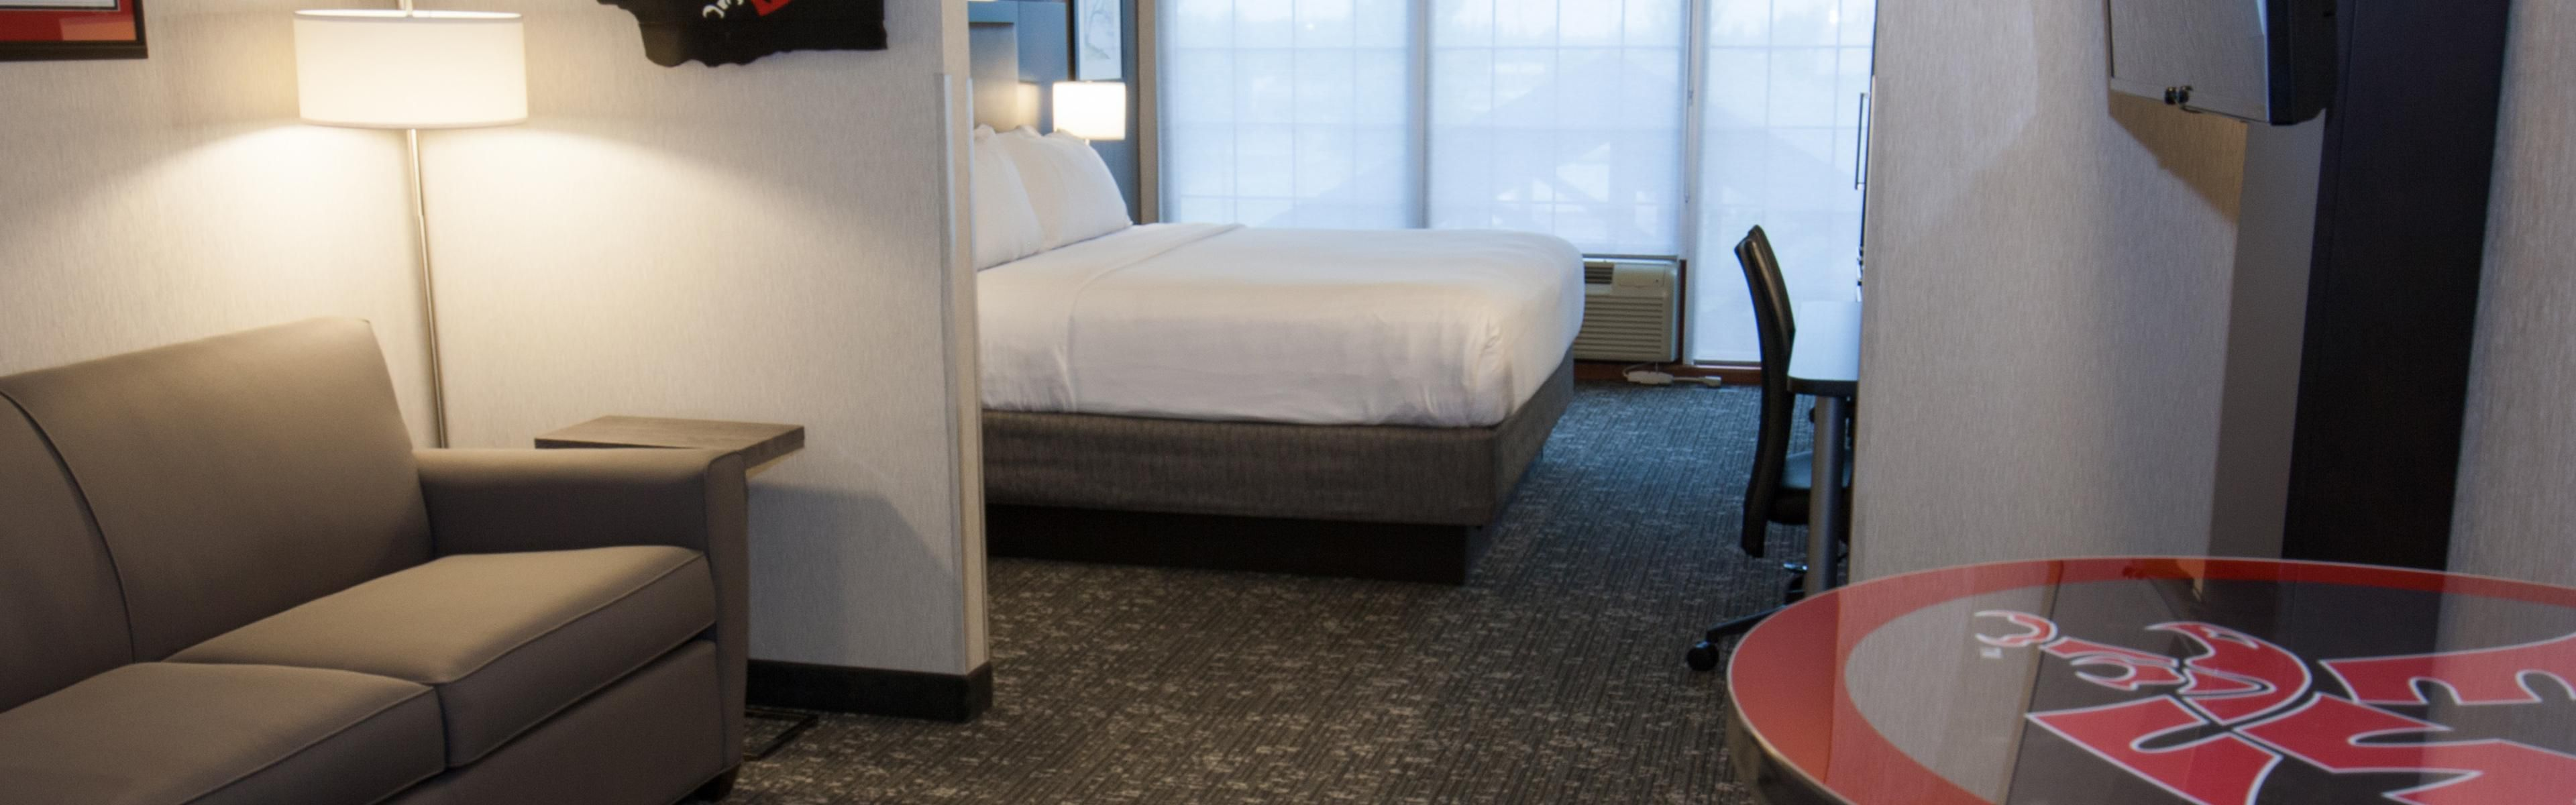 Holiday Inn Express & Suites Cheney image 1